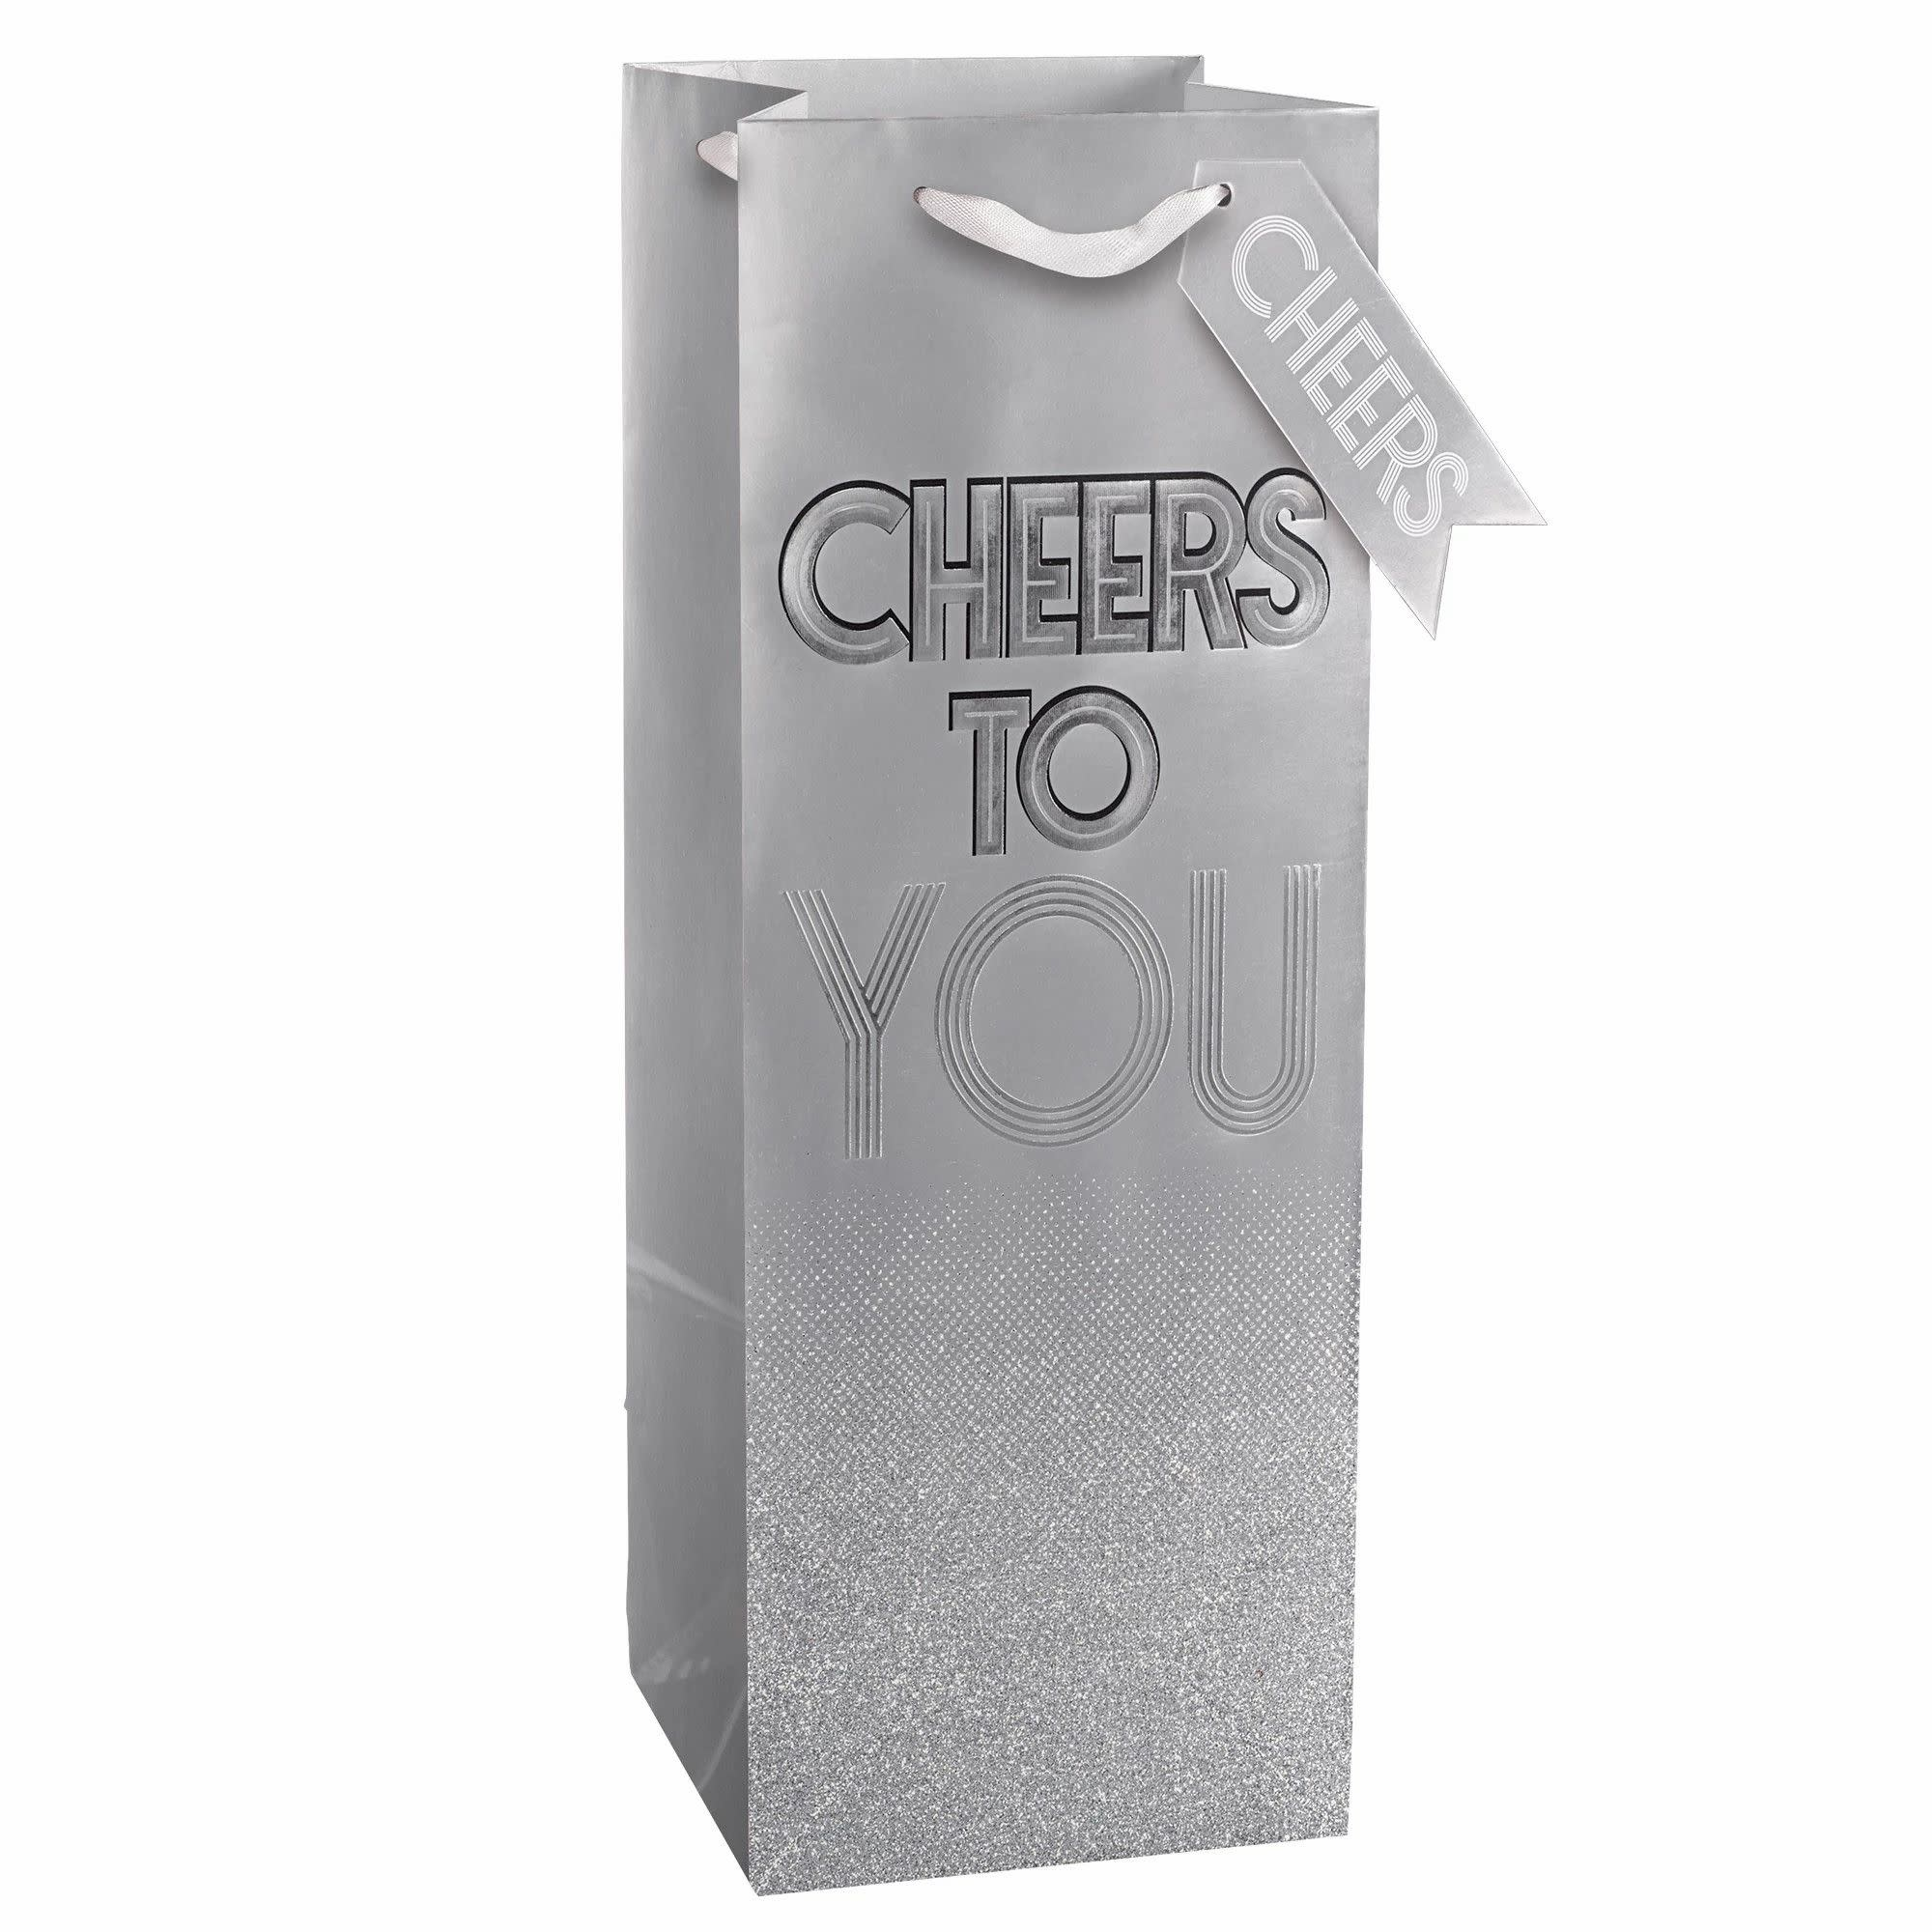 Cheers To You Bottle Bag W/ Gift Tag